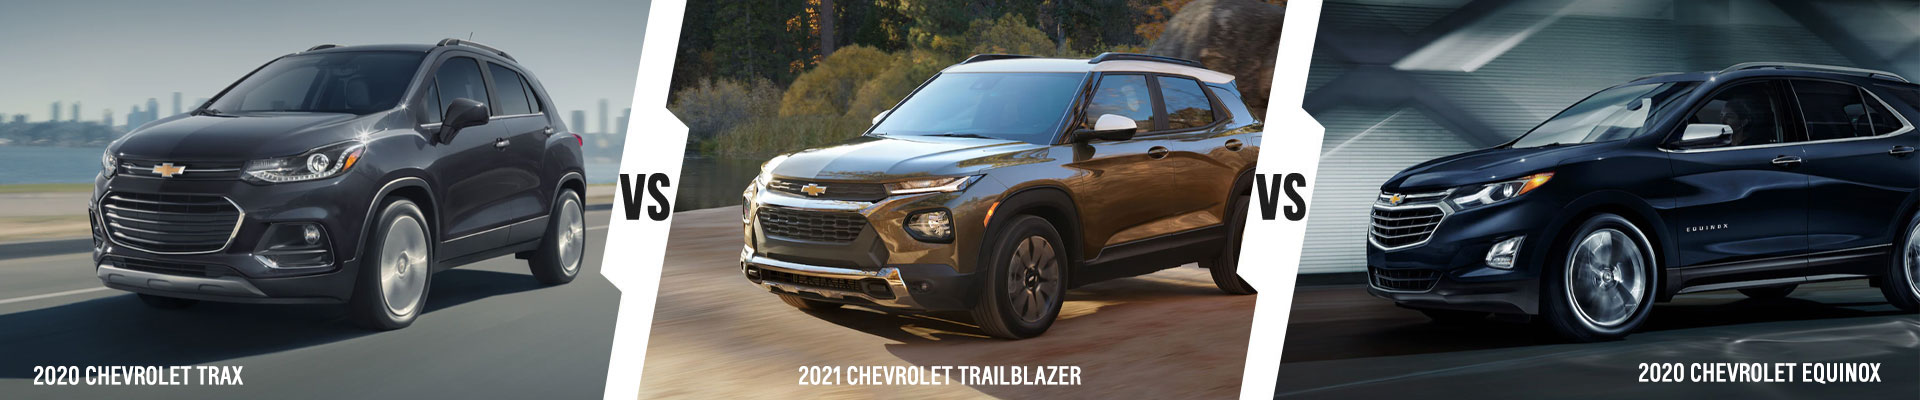 Chevy SUV Comparison: 2020 Chevrolet Trax Vs 2021 Chevrolet Trailblazer Vs 2020 Chevrolet Equinox